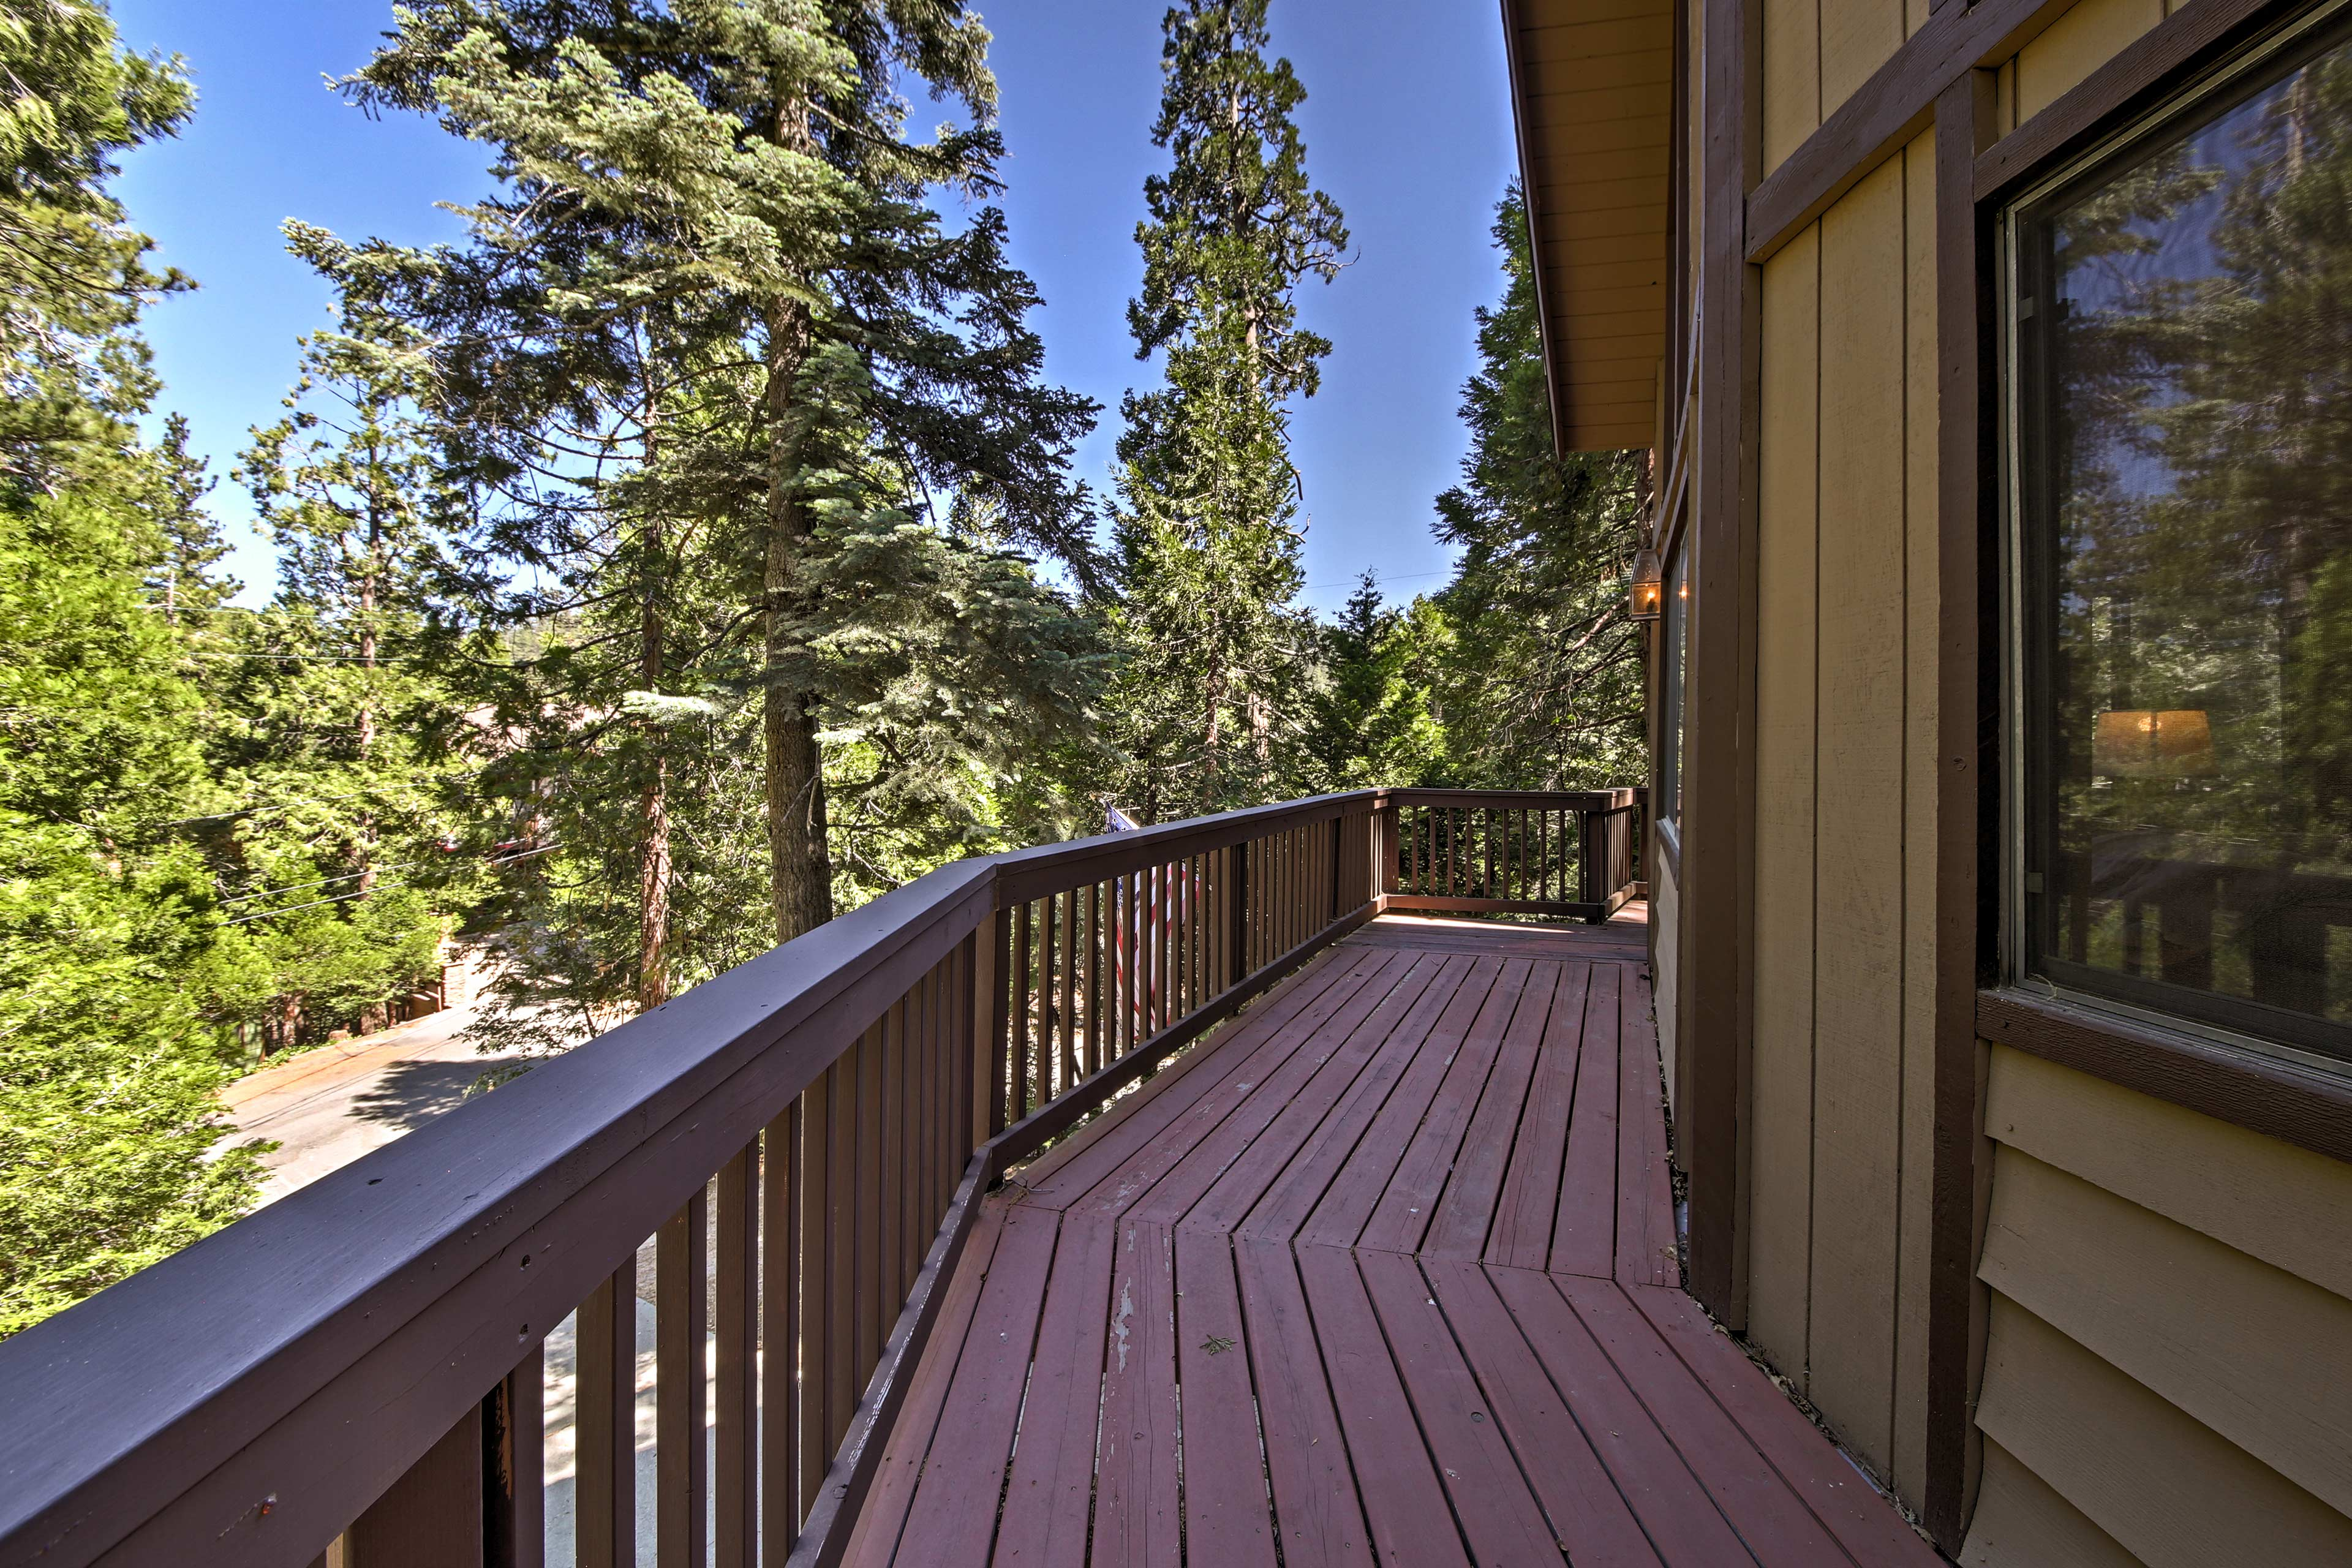 The wraparound deck spans the front of the house.